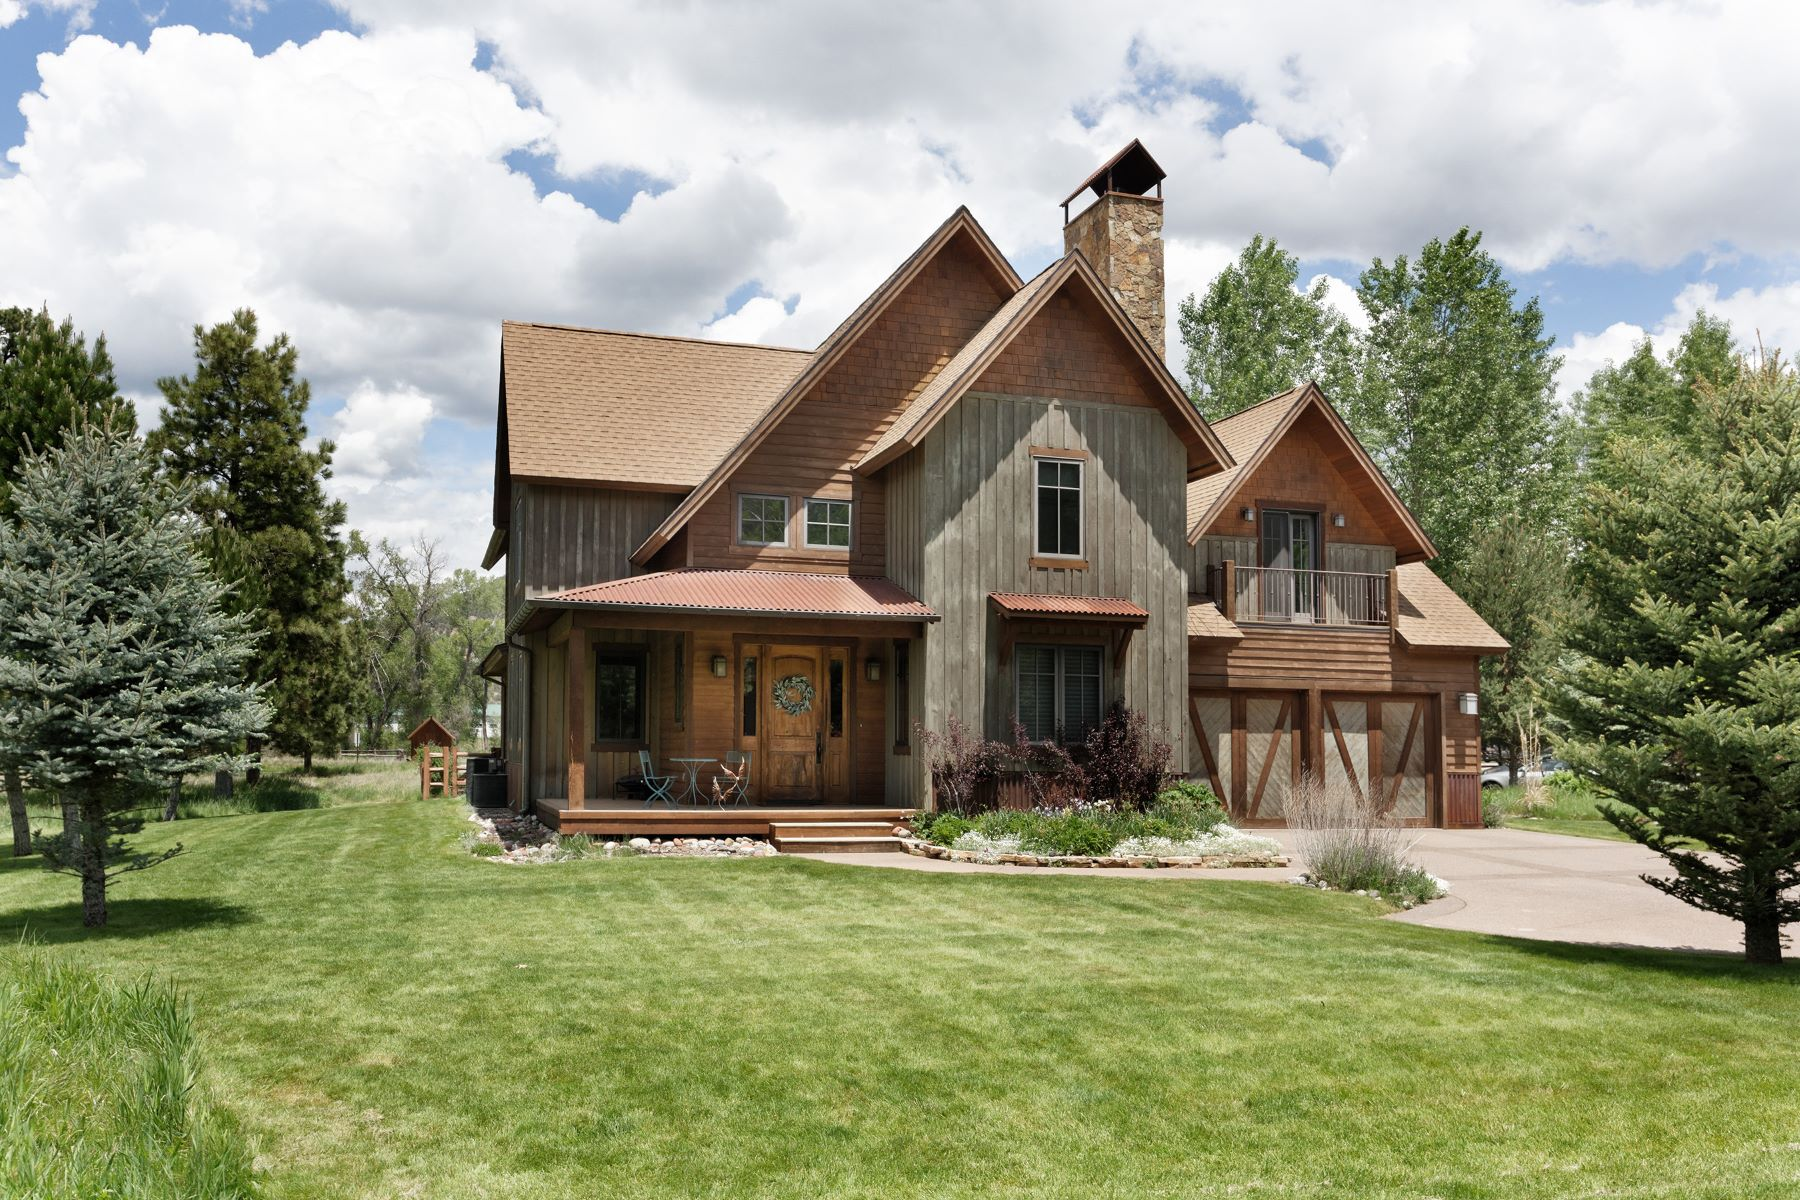 Single Family Home for Sale at Blue Creek Ranch 41 Choke Cherry Court Carbondale, Colorado, 81623 United States